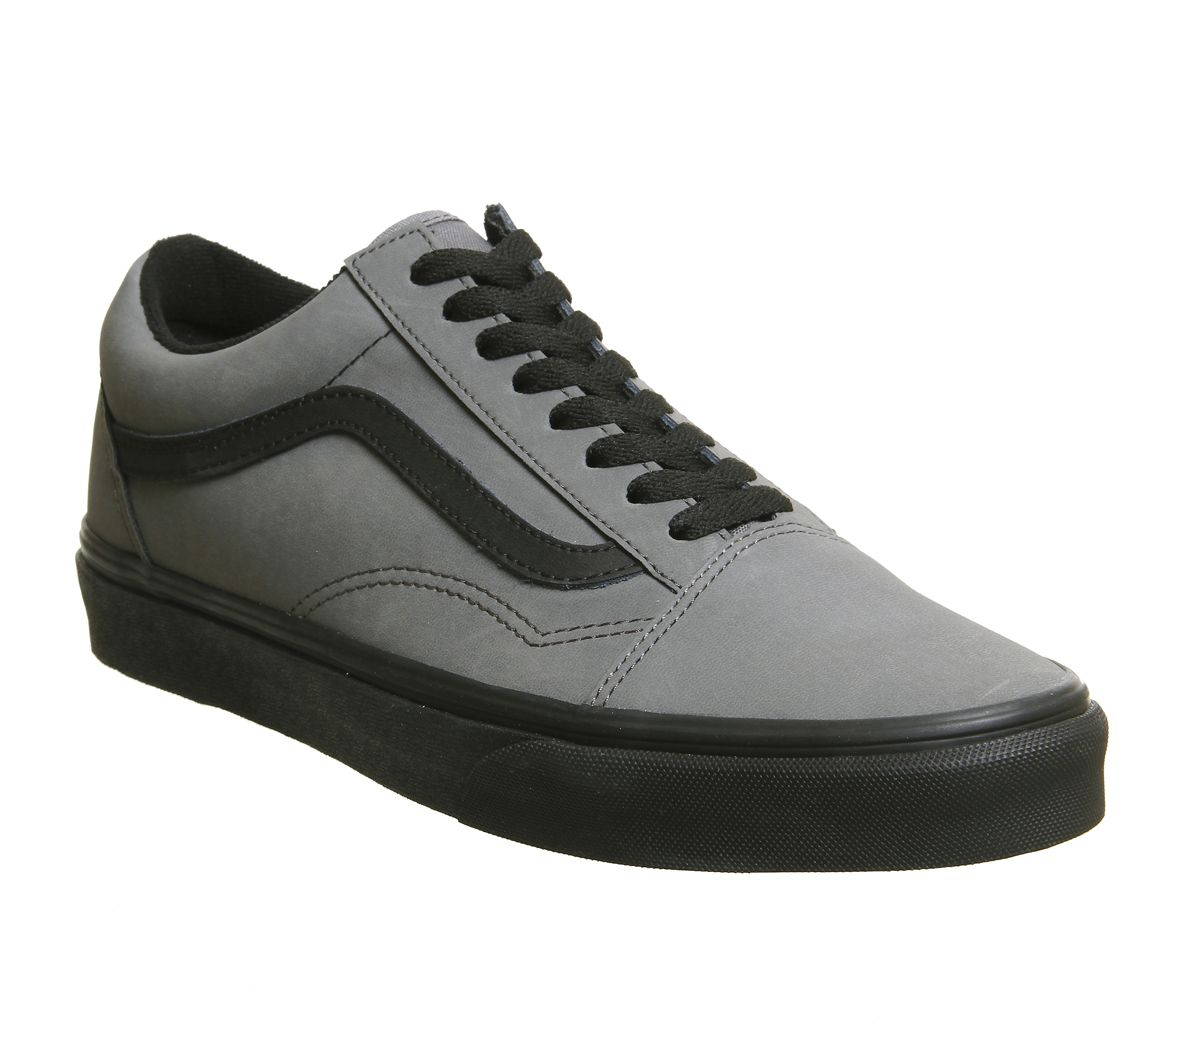 9e92f8dcc1 Vans Old Skool Trainers Pewter Black Vansbuck - Hers trainers